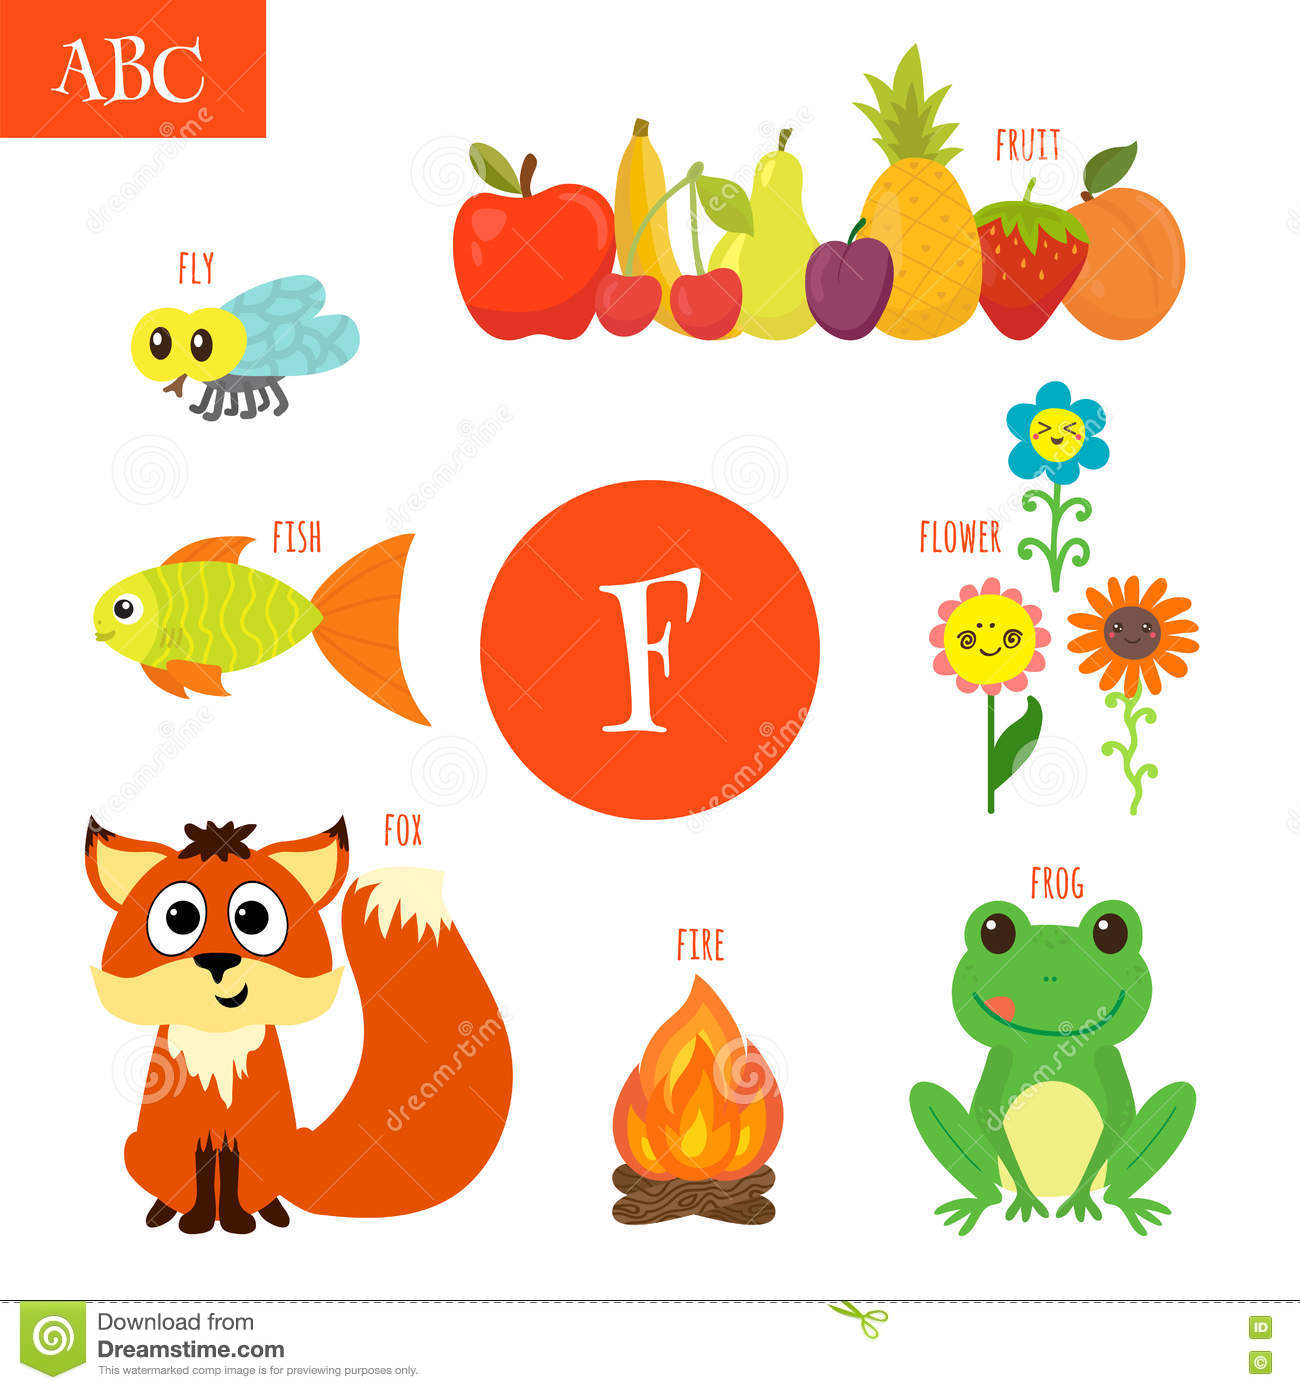 Fun Words That Start With The Letter F